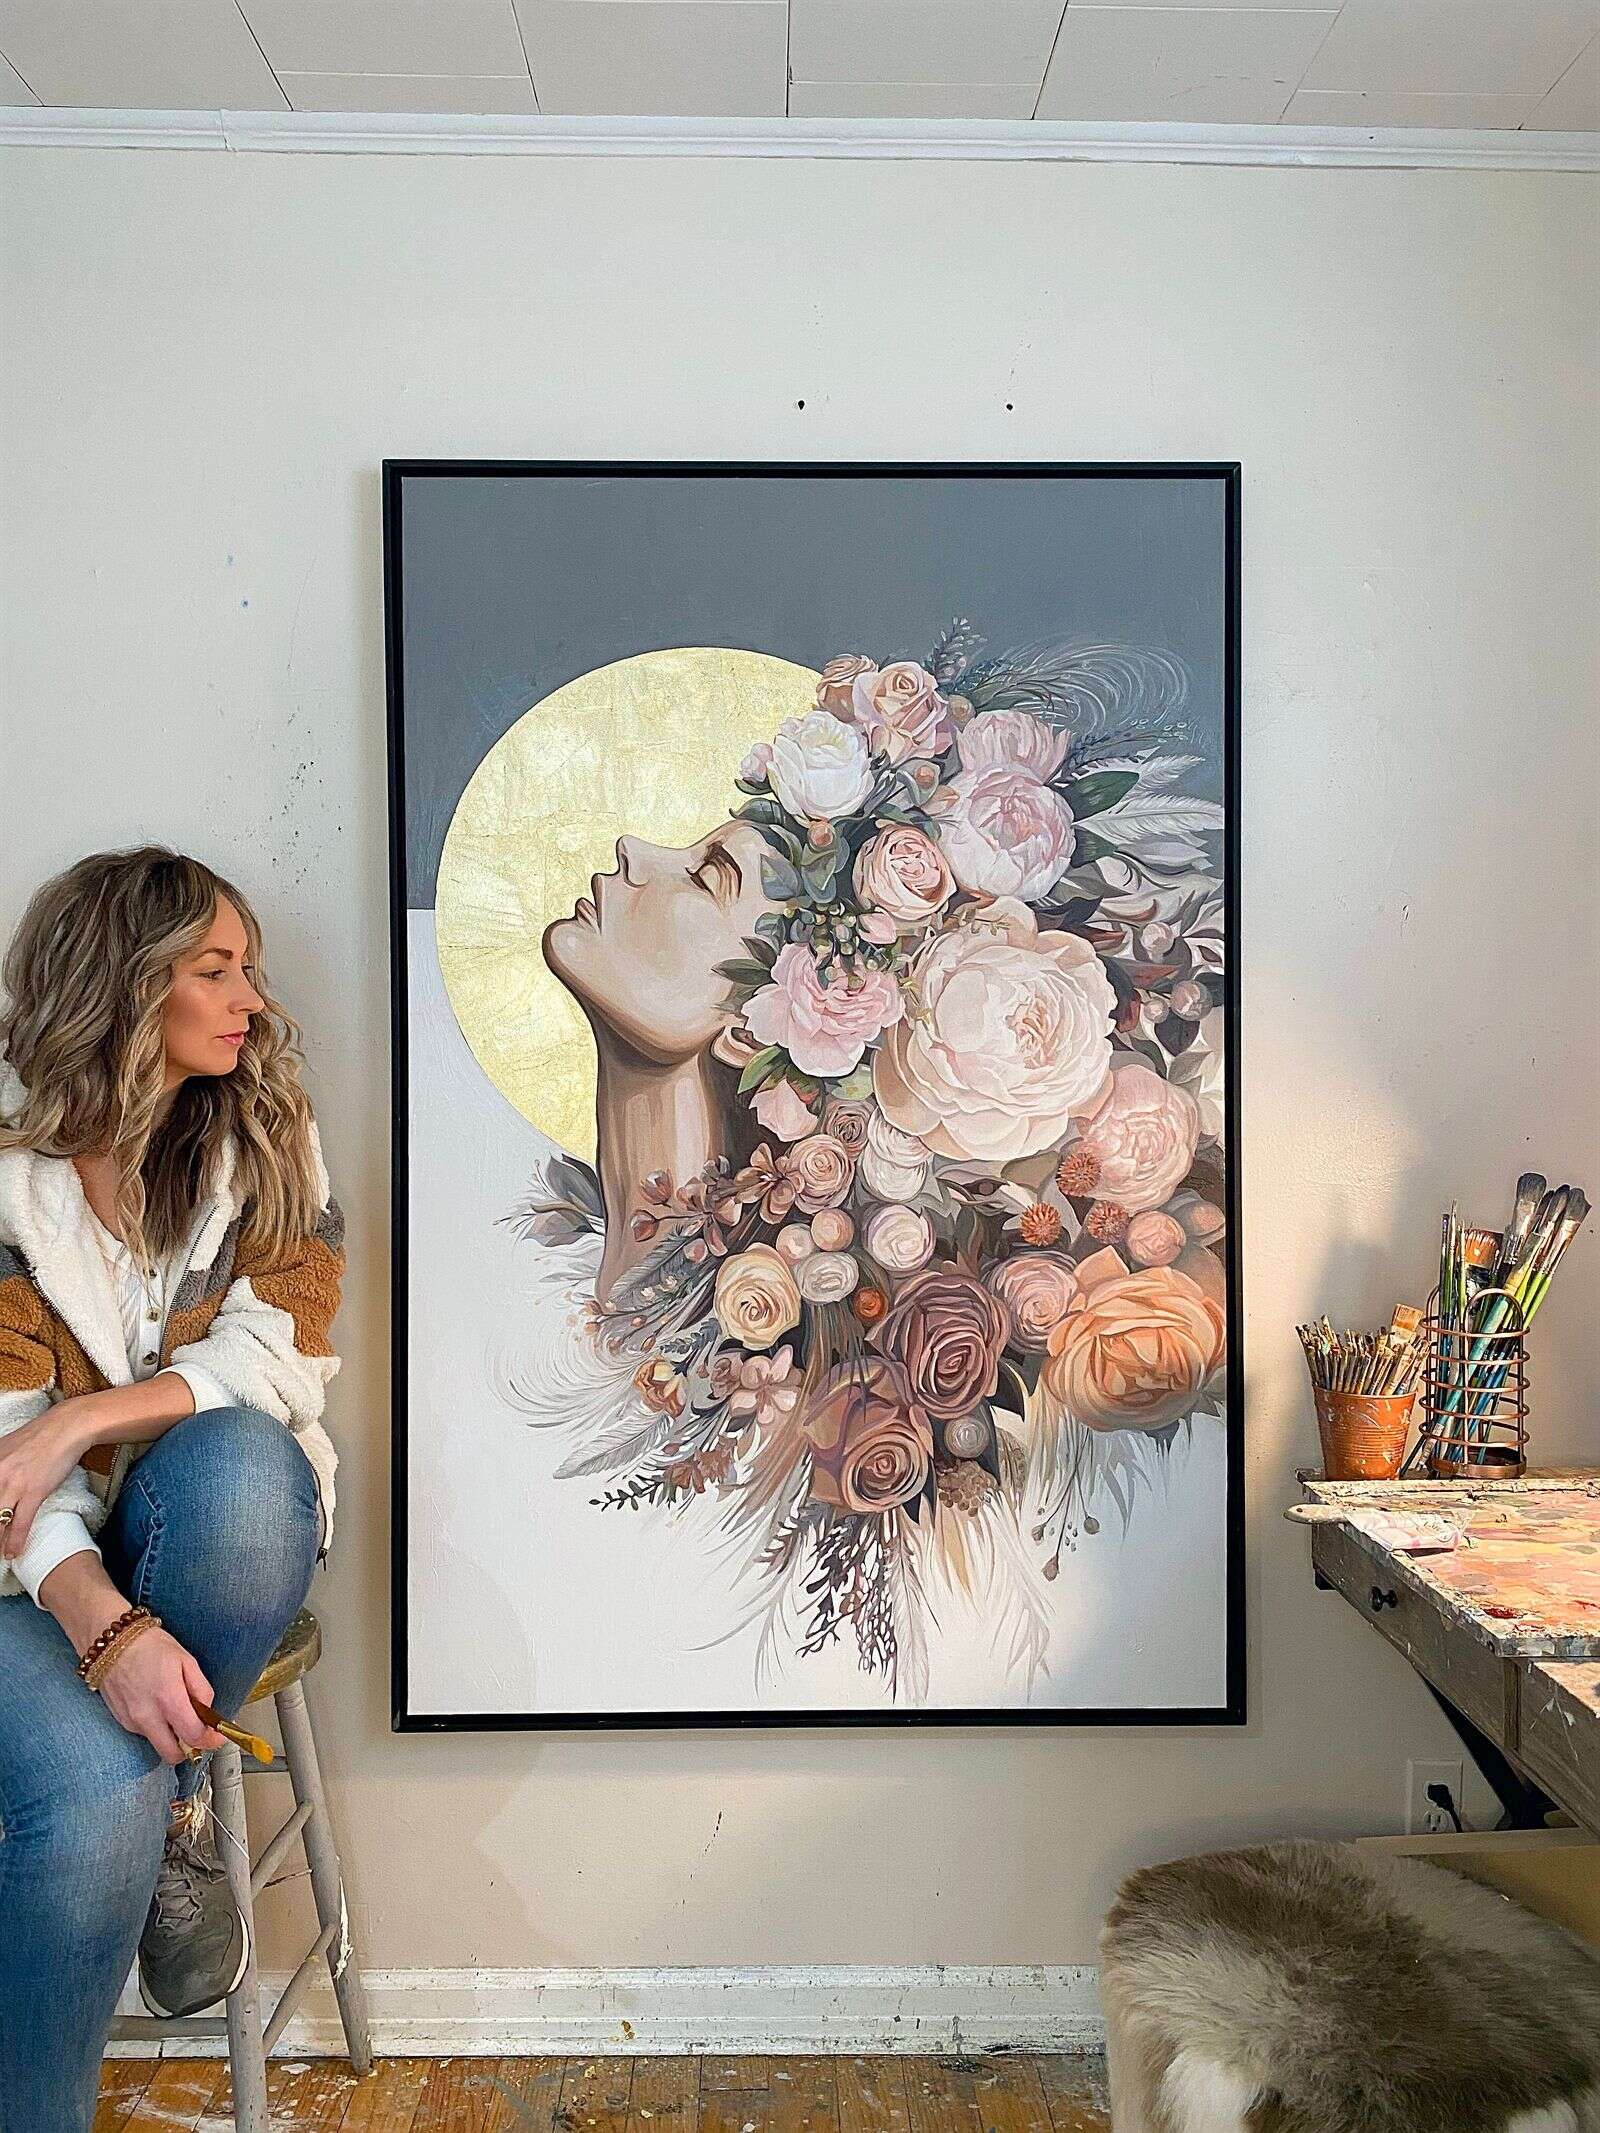 Artist's Park City exhibit aims to show people's 'potential to blossom and bloom'